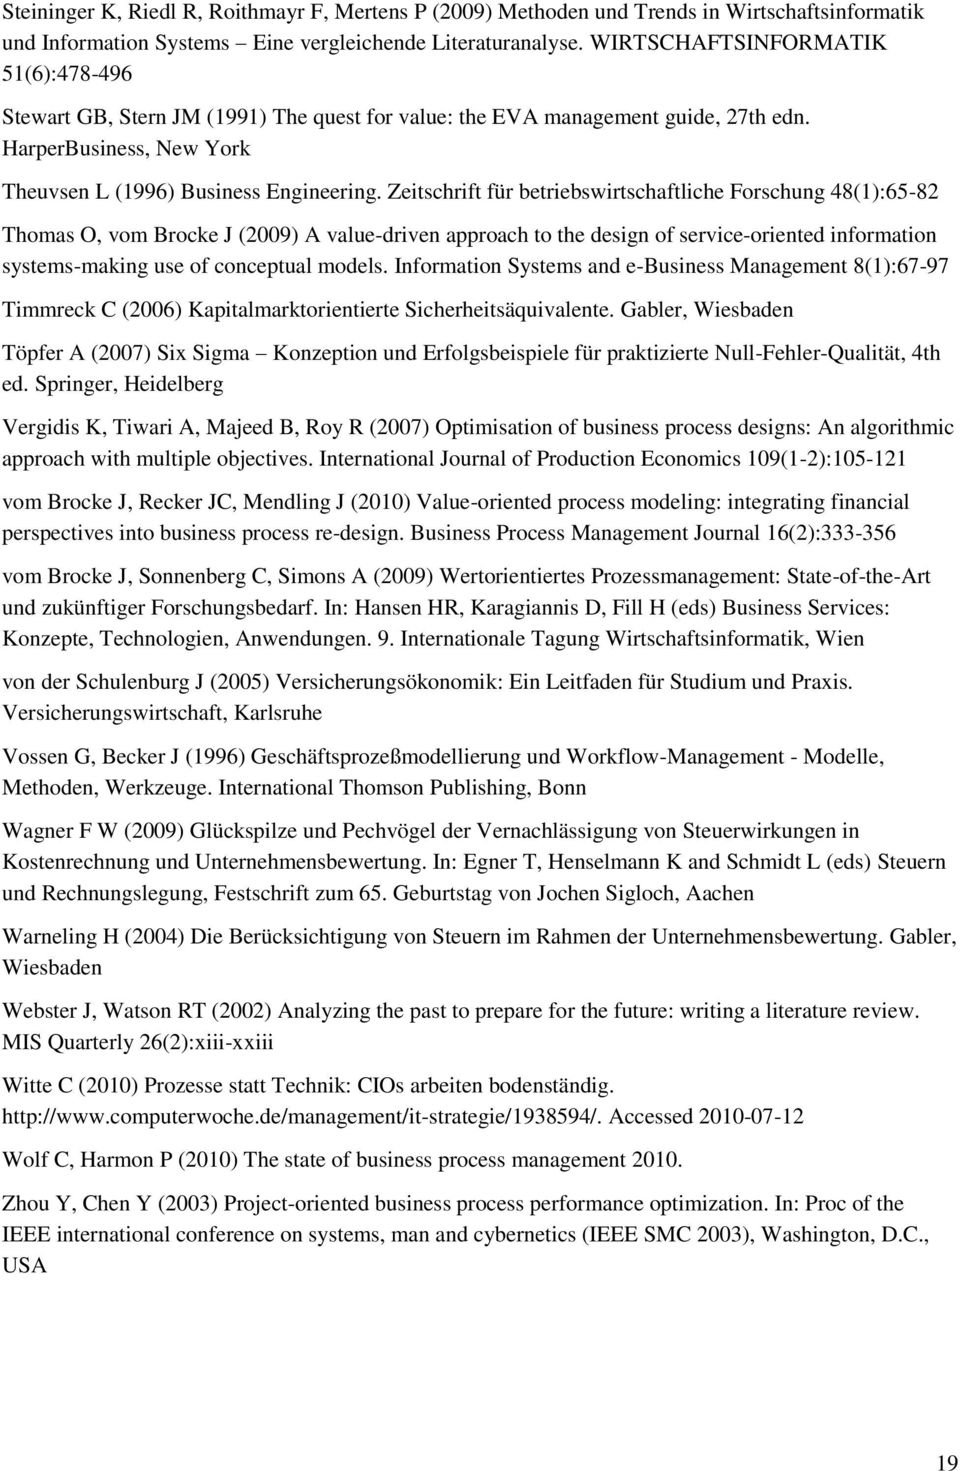 Zeitschrift für betriebswirtschaftliche Forschung 48(1):65-82 Thomas O, vom Brocke J (2009) A value-driven approach to the design of service-oriented information systems-making use of conceptual